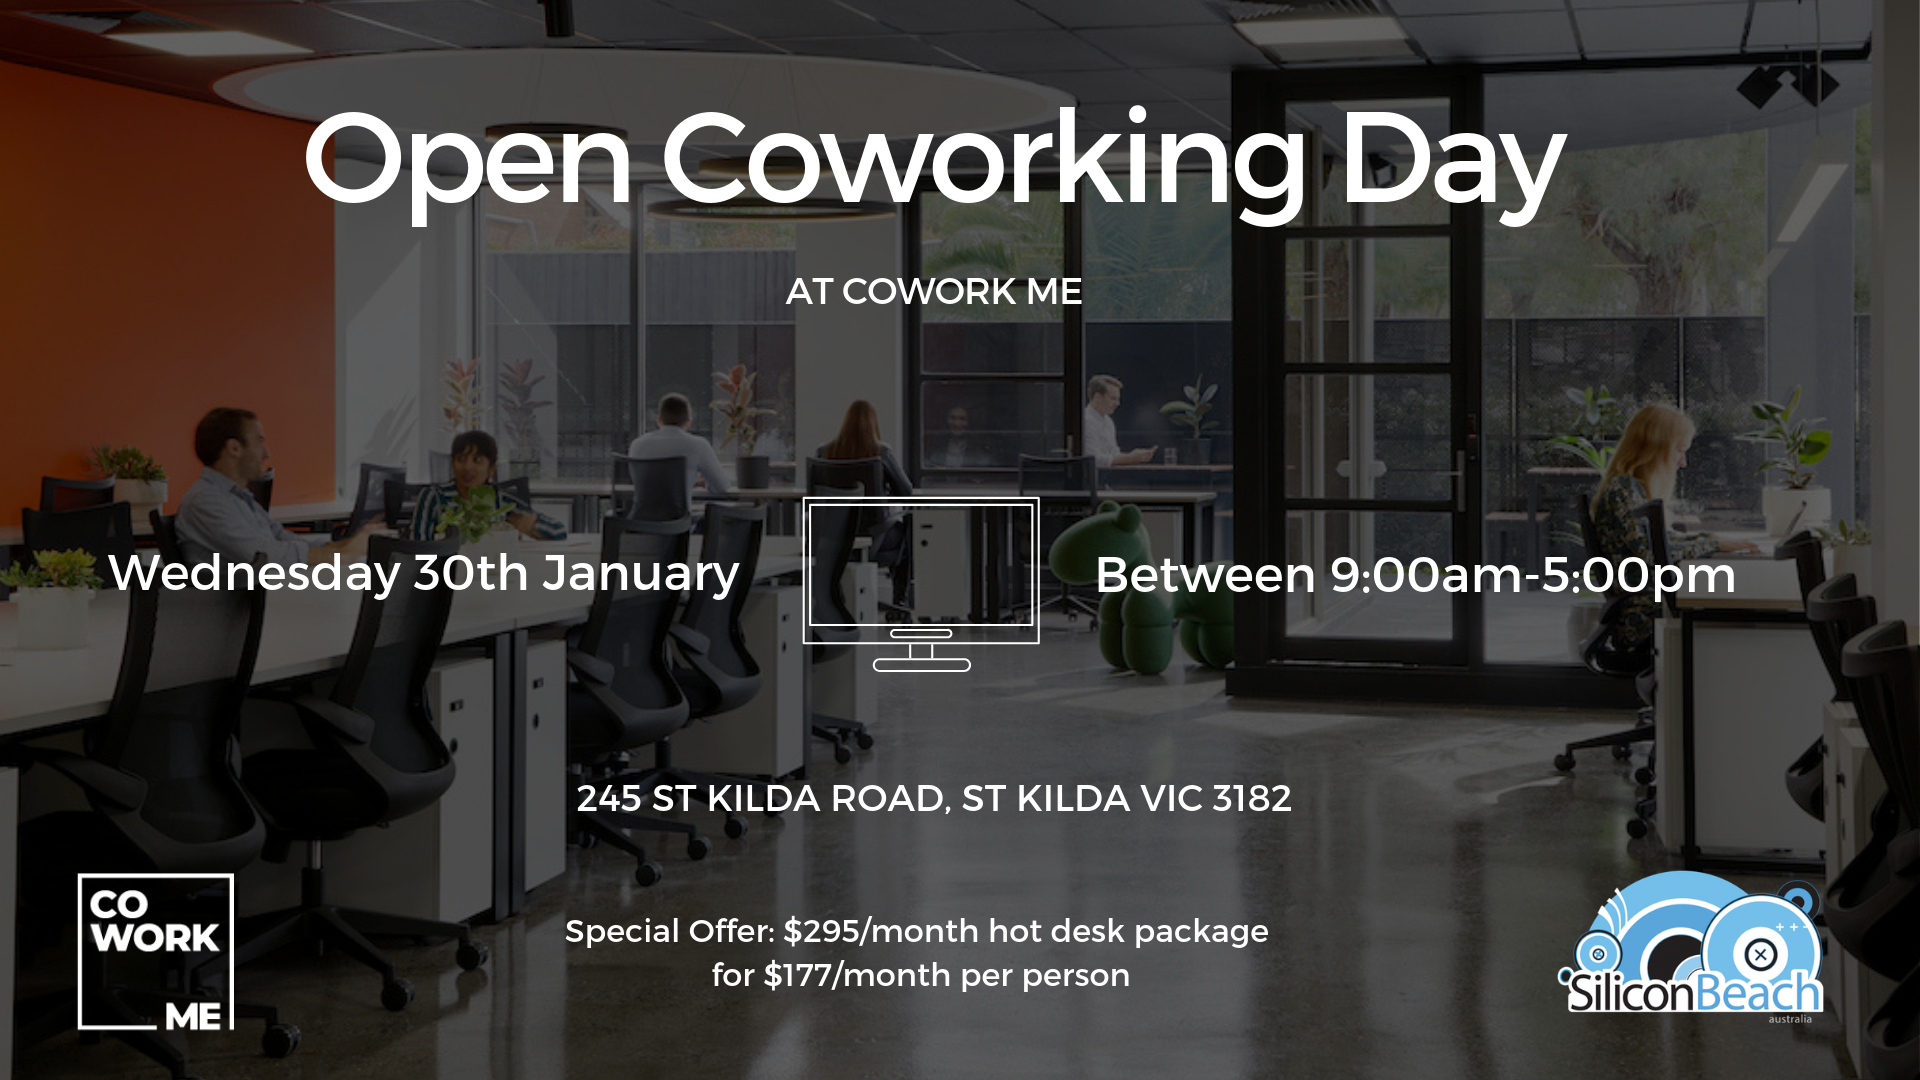 Silicon Beach Open Coworking Day @CoWork Me